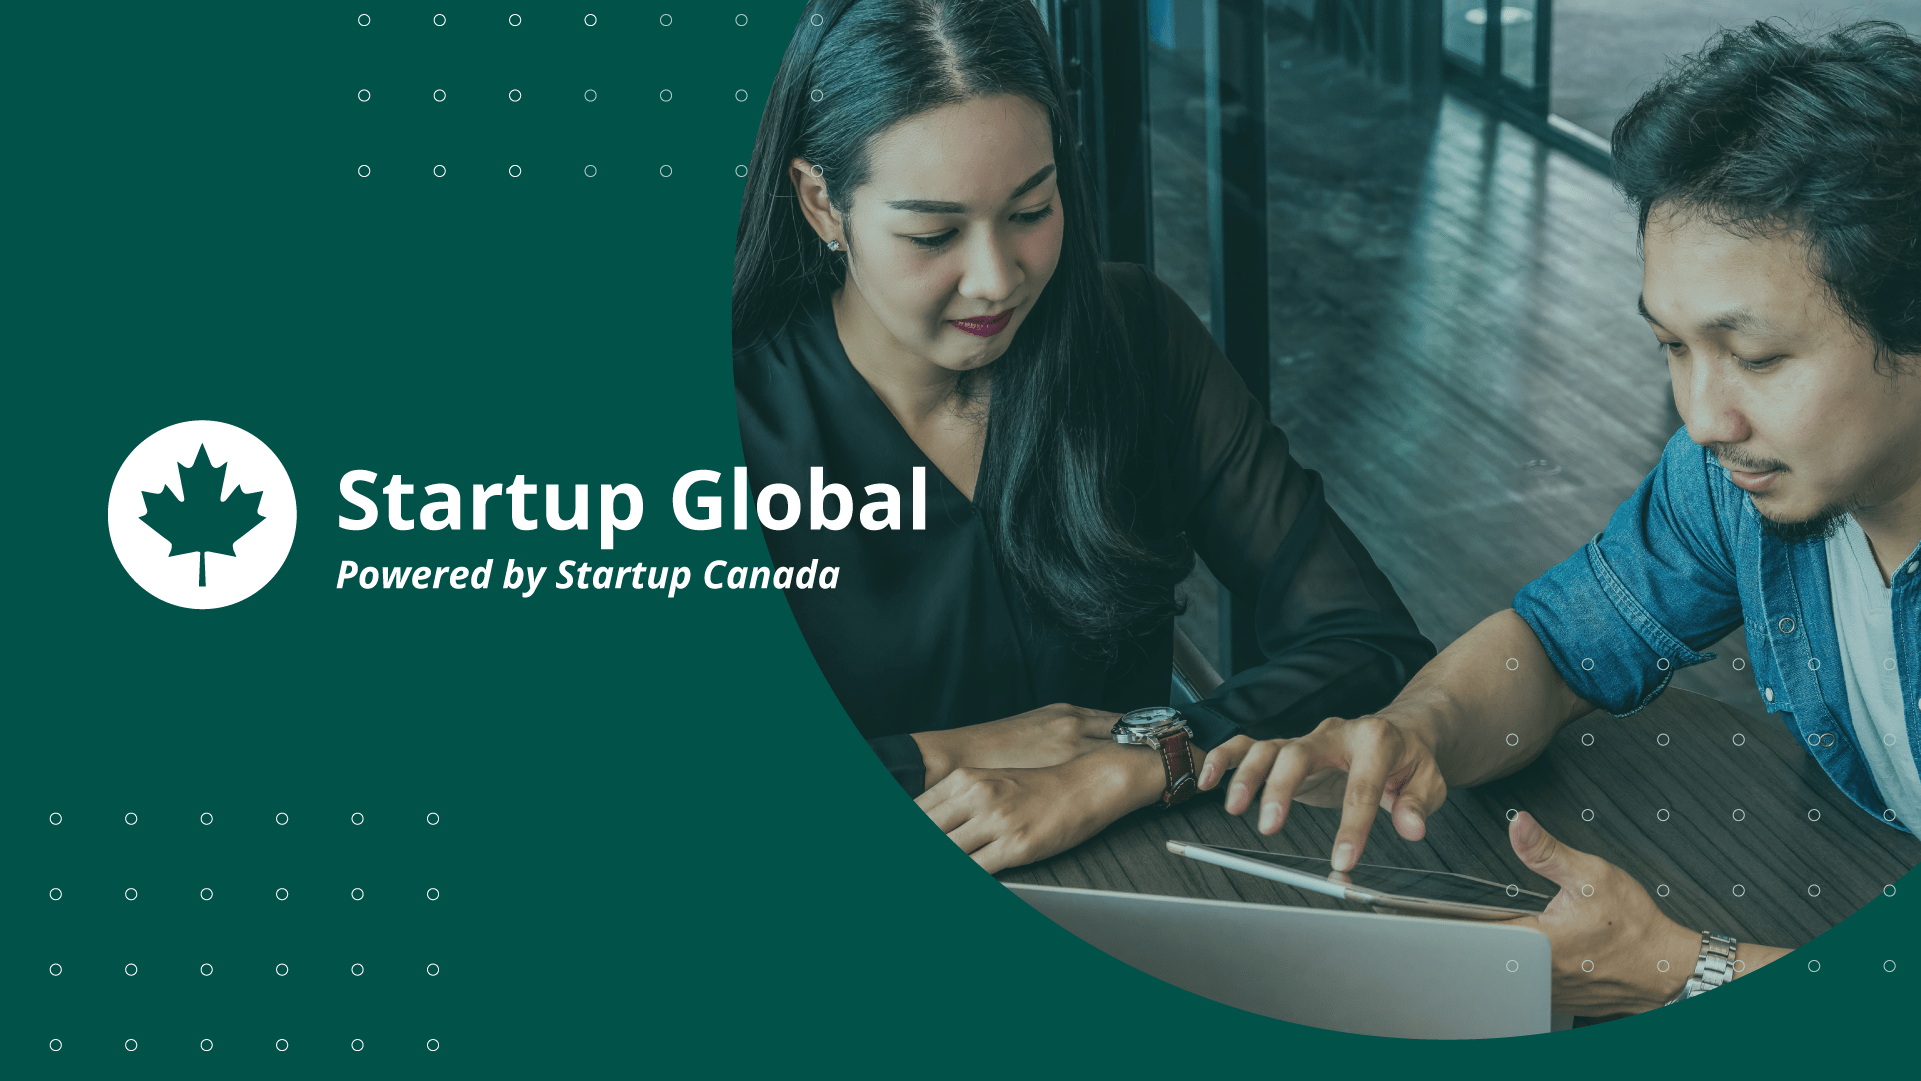 Startup Canada Launches Startup Global (previously CXC)